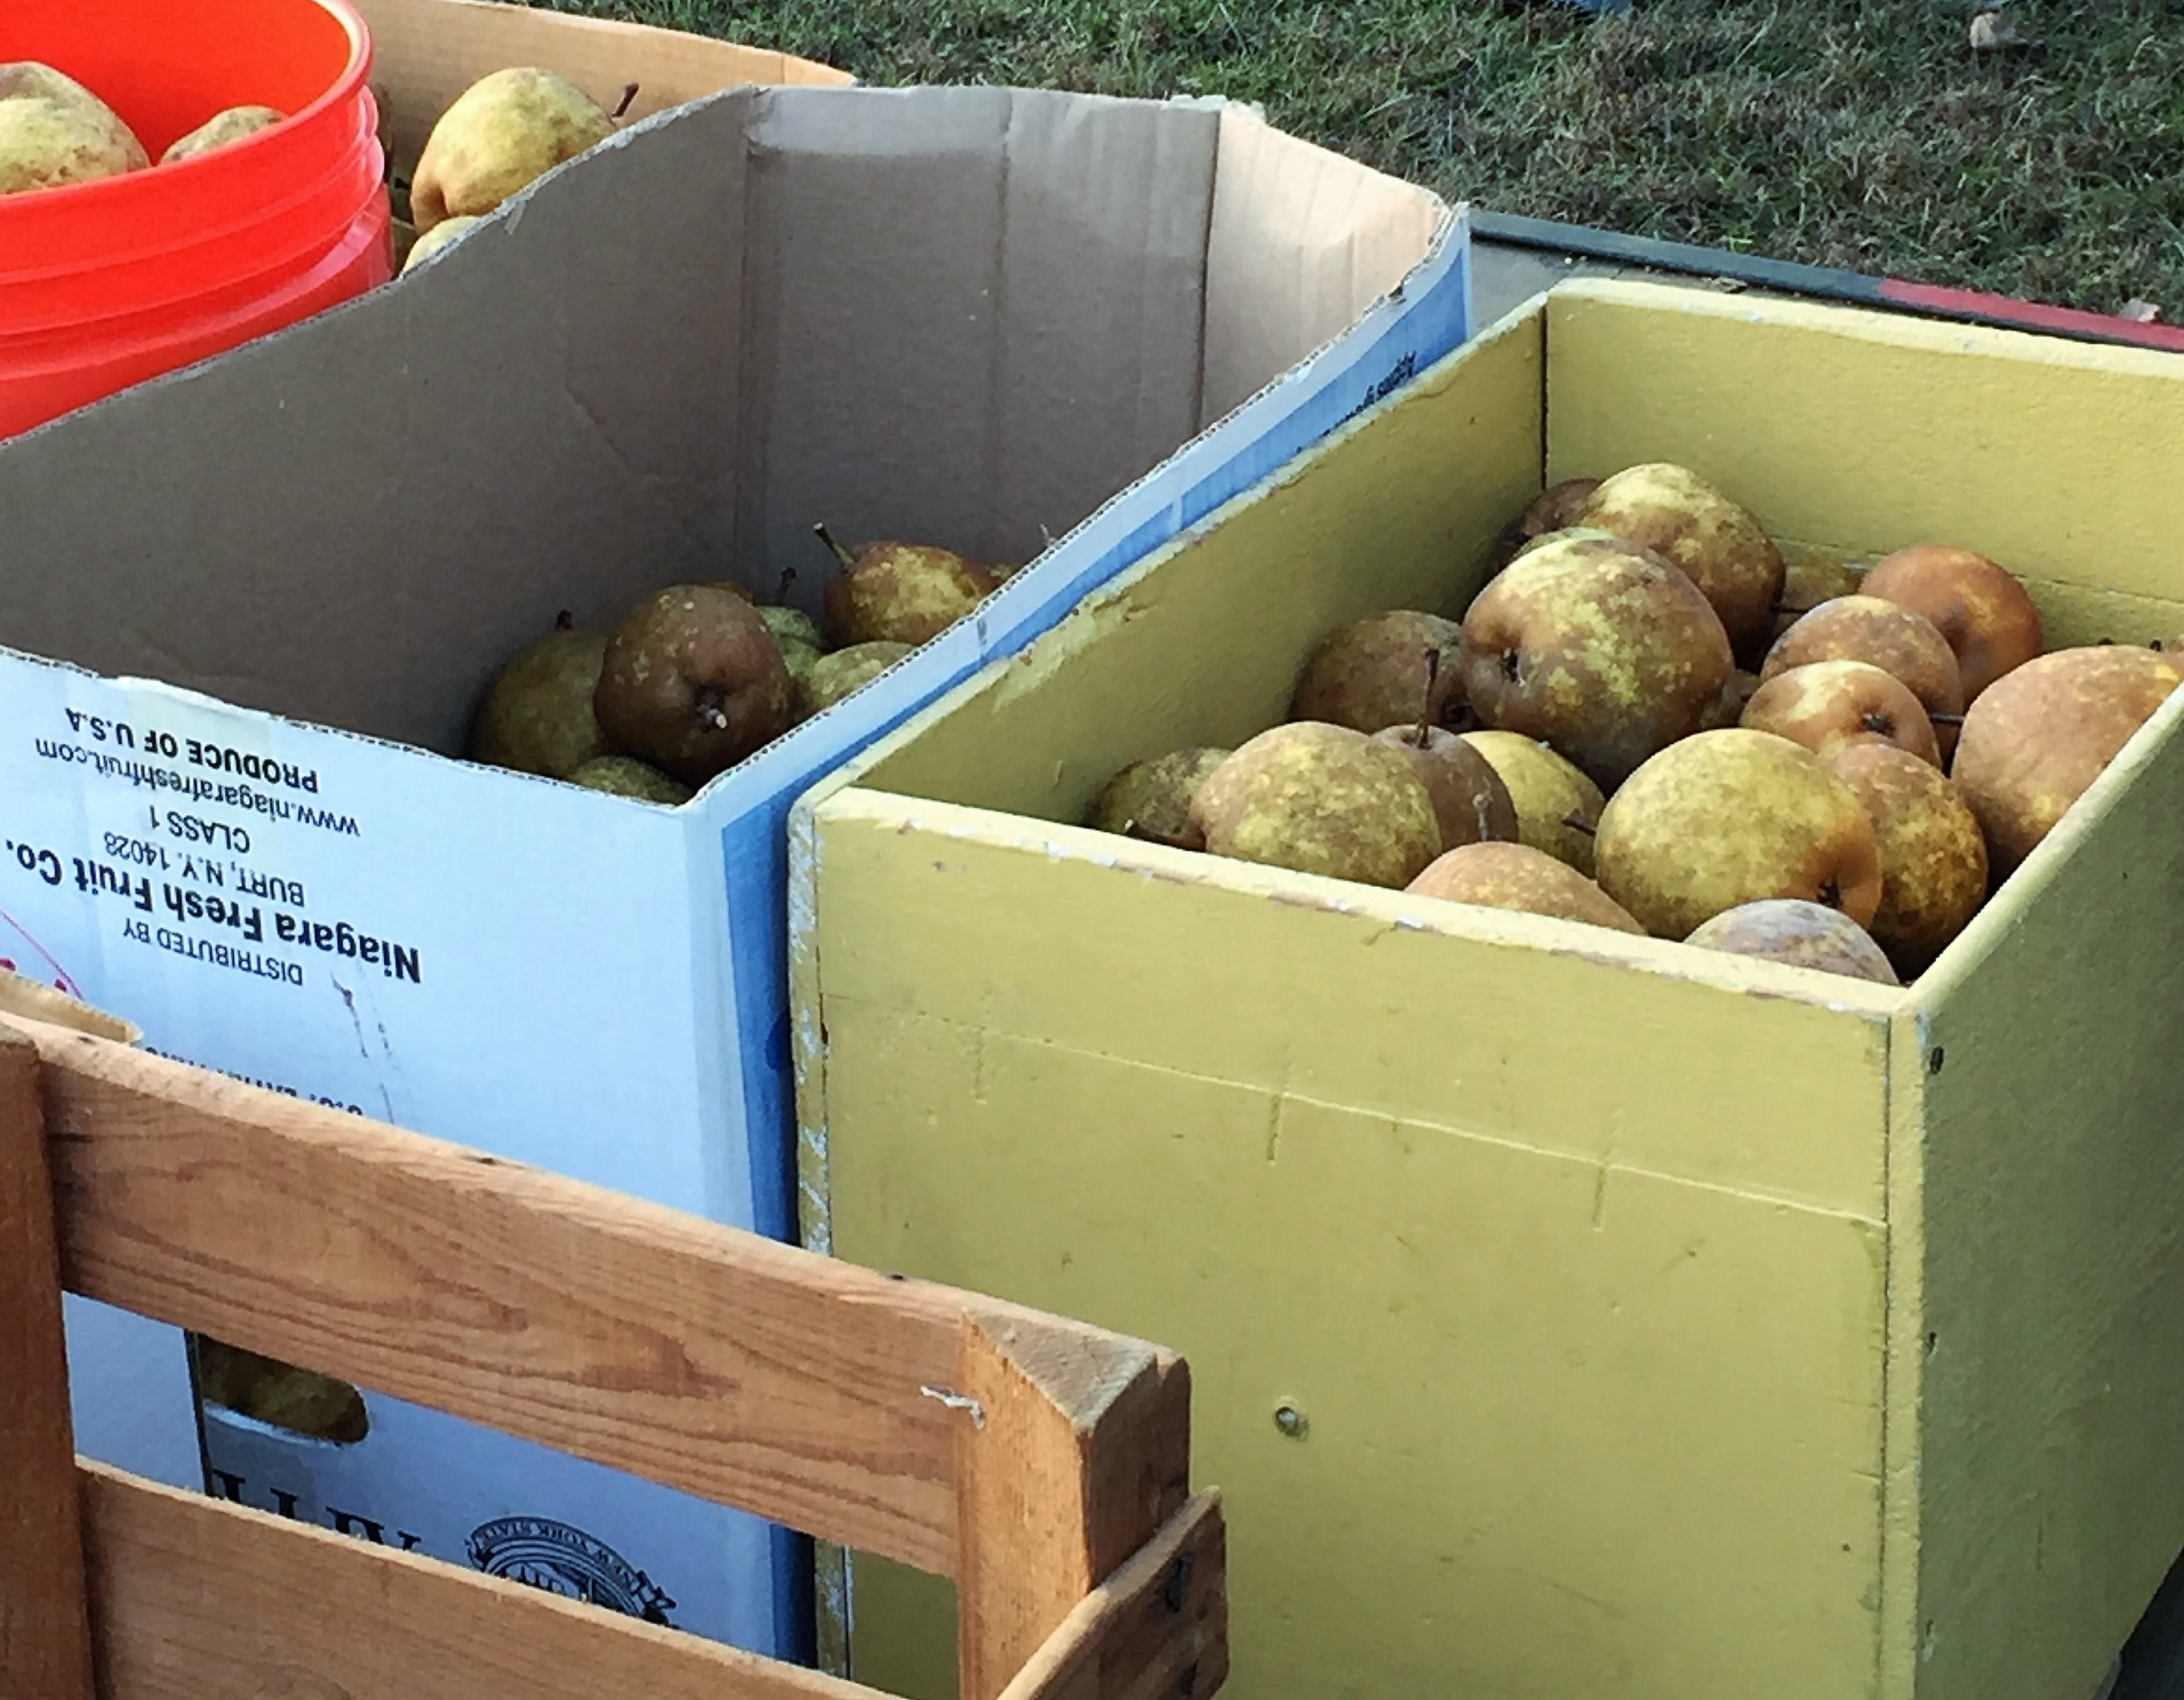 Wagon full of pears. Picking pears is a fun fall activity!